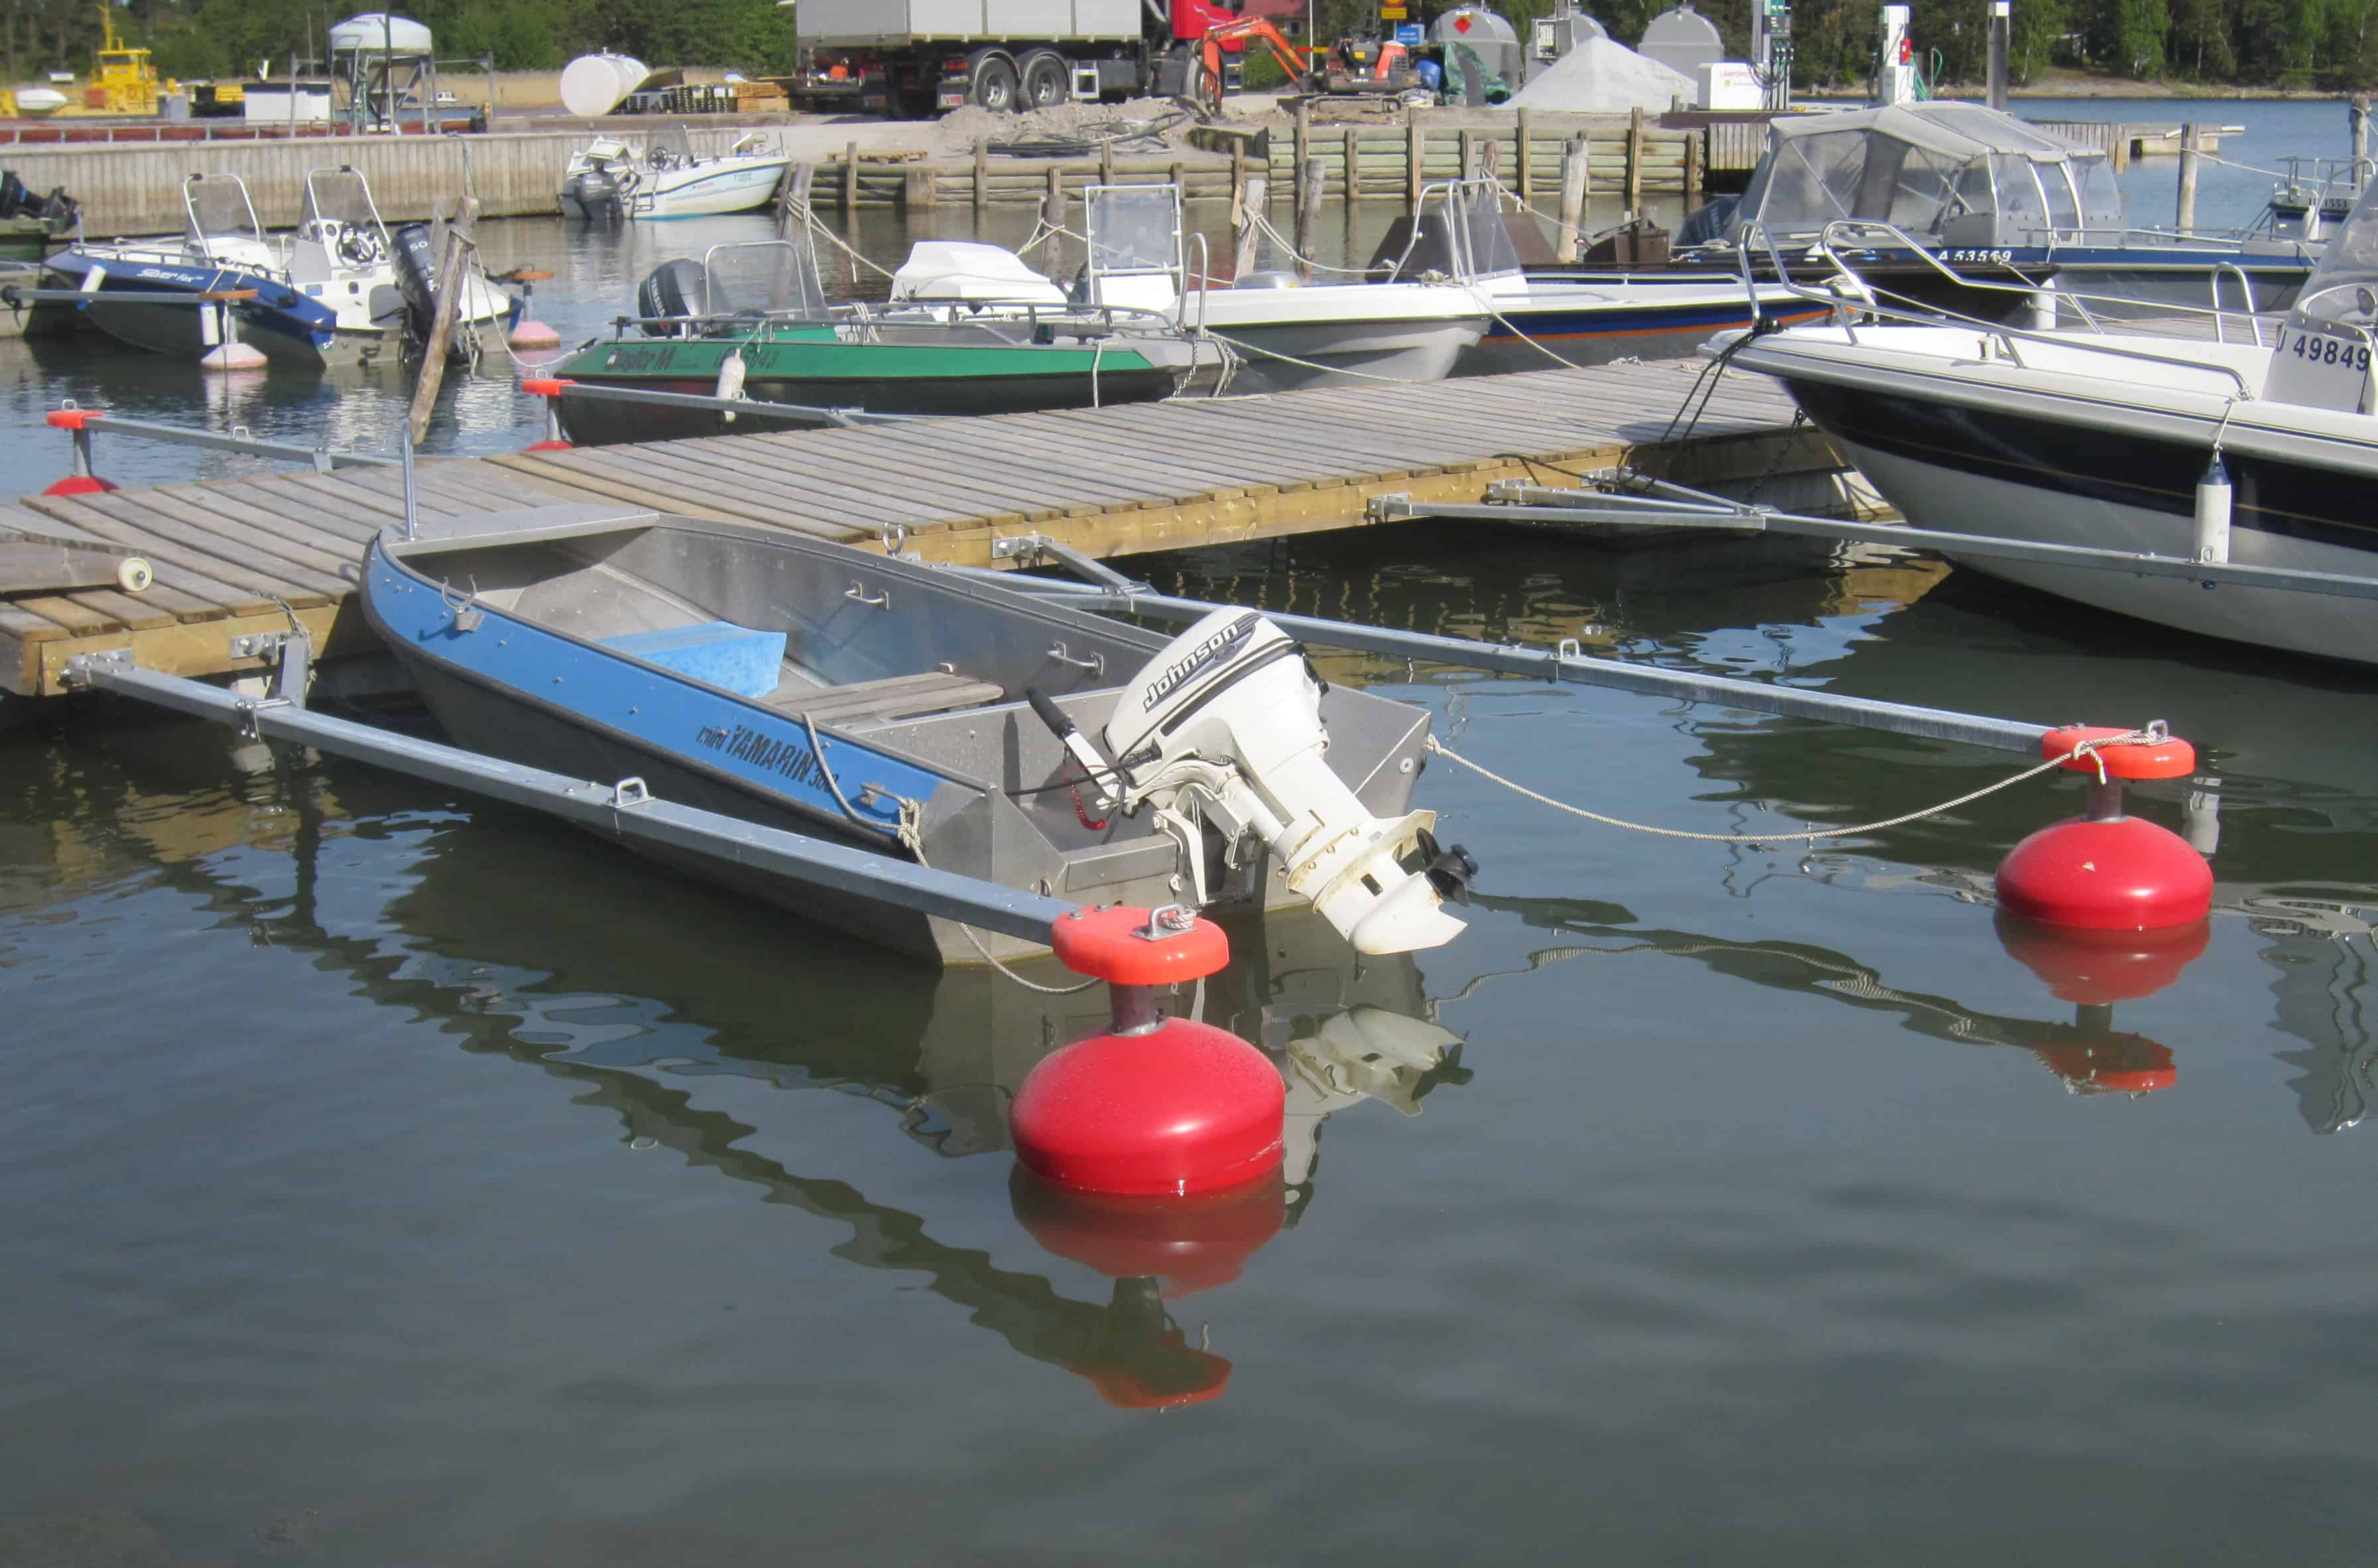 Boat Boom 5m with Float 60L